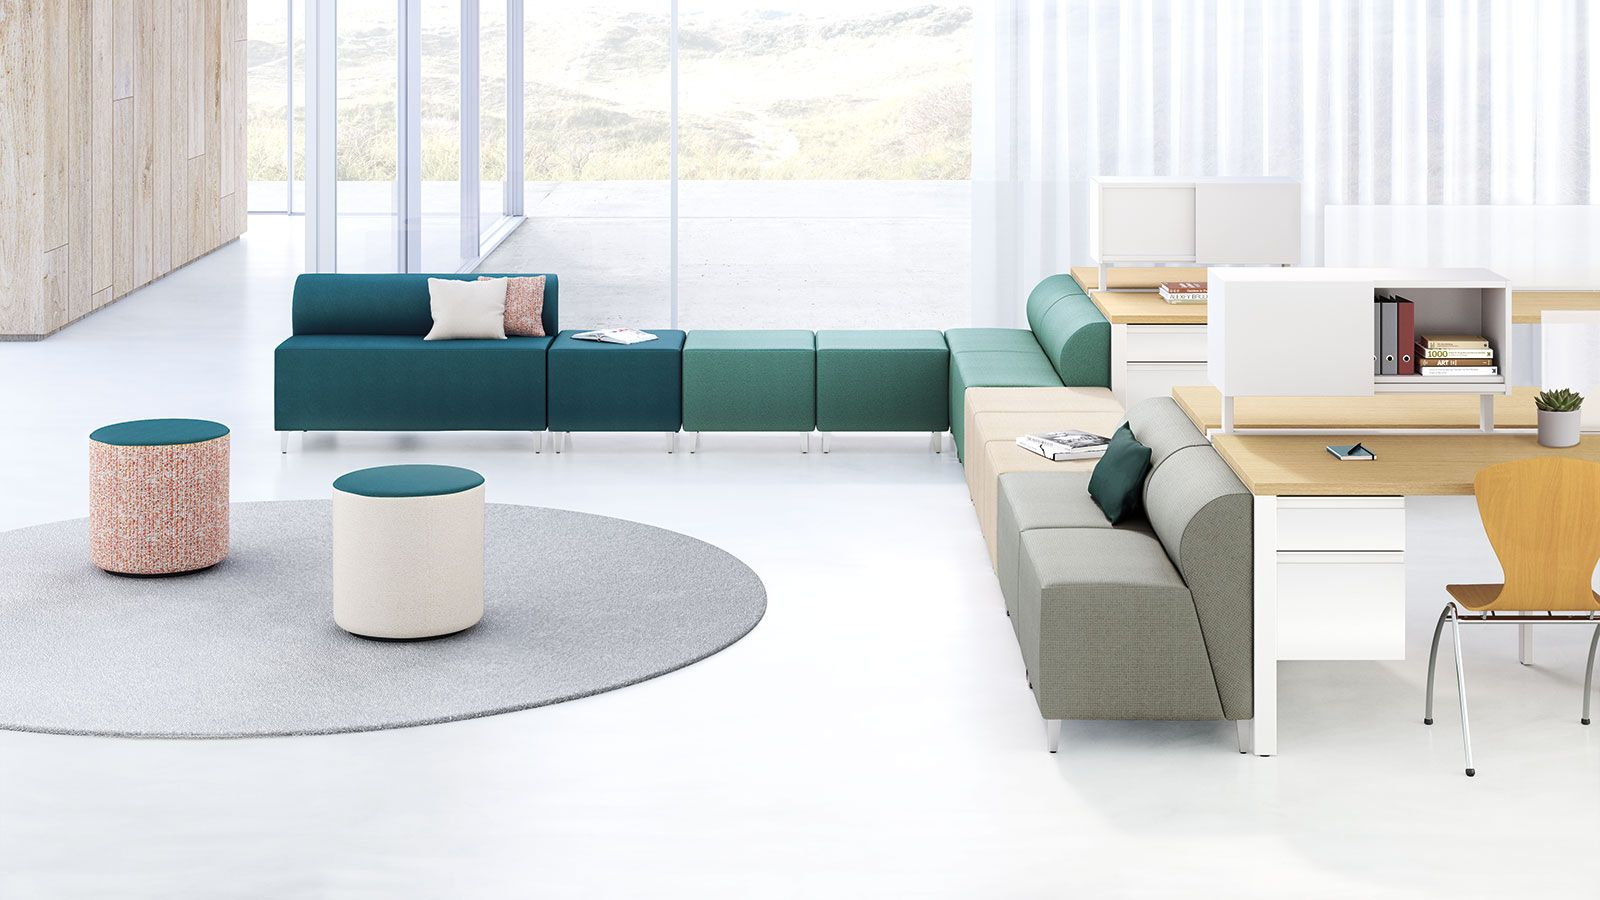 The Kimball Office Dwell Seating PeabodyPicks Interiordesign - Kimball office furniture